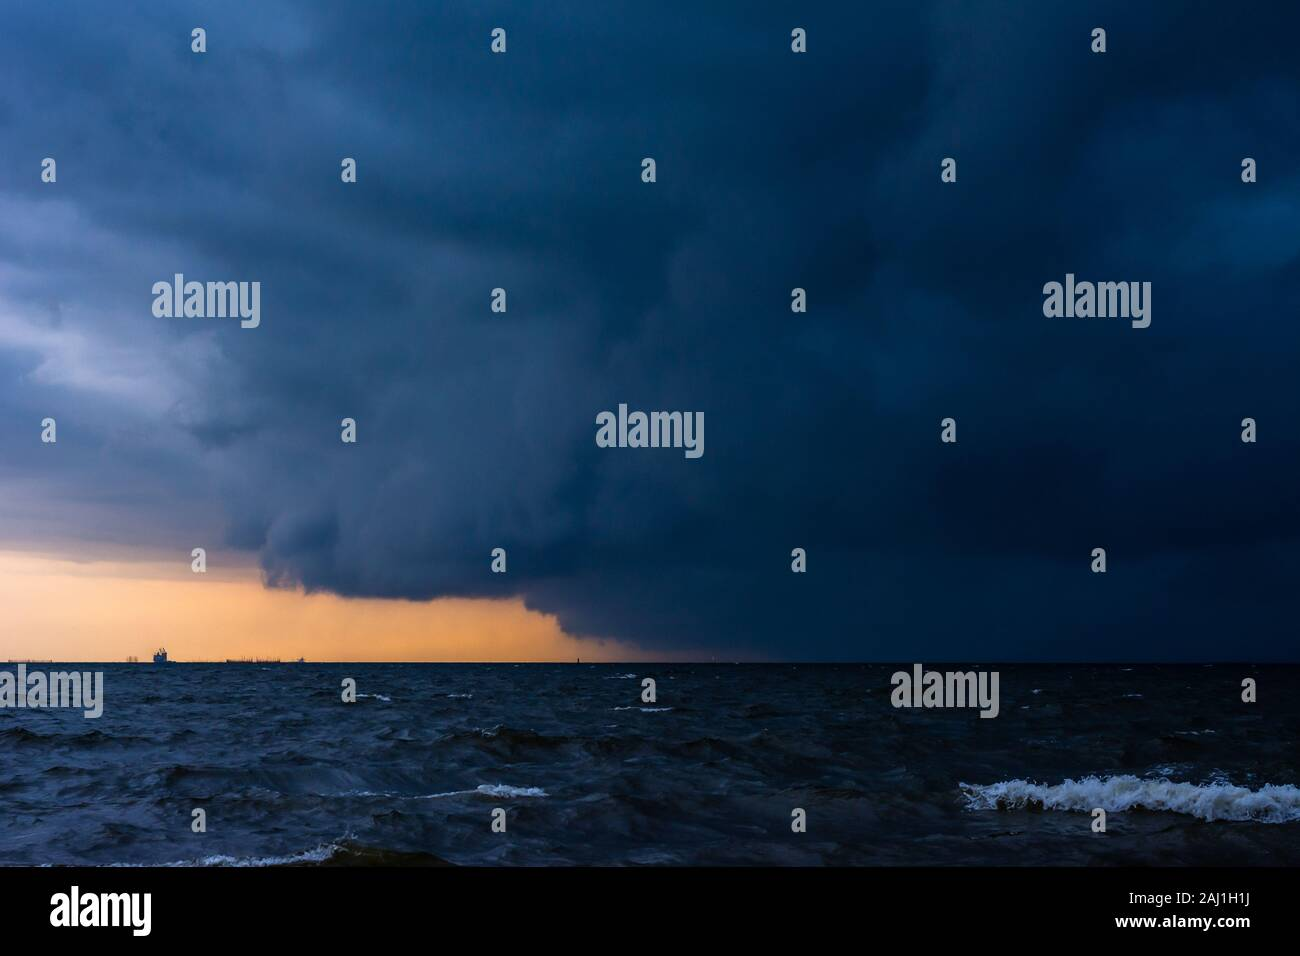 Approaching storm cloud with rain over the sea. Stock Photo